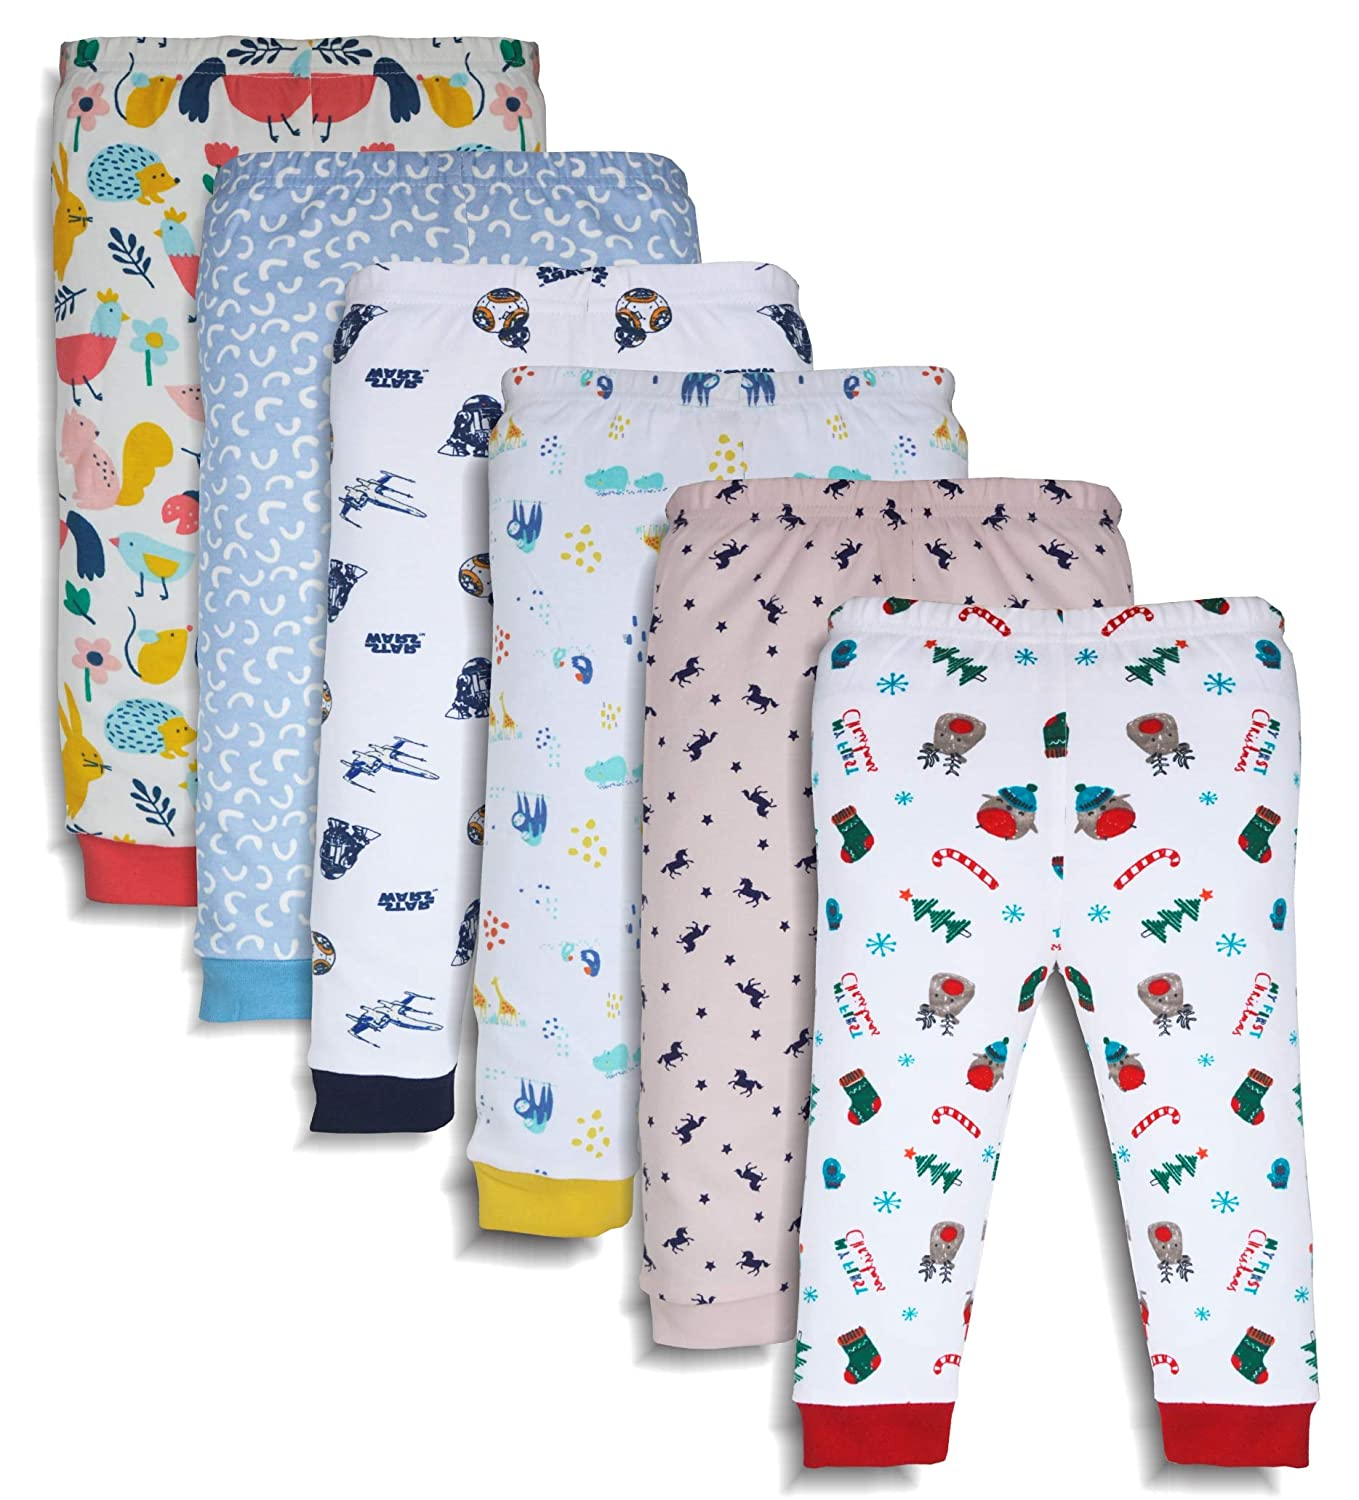 533b13d3c MiniCult Cotton Baby Pajama Pants Unisex with Rib (Pack of 6 ...